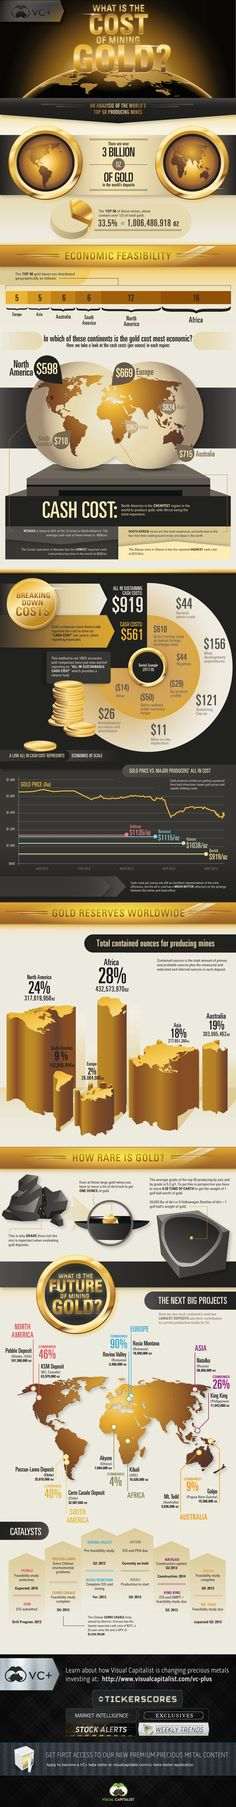 http://www.karatbars.com/?s=mauricer - What is the cost of mining gold.